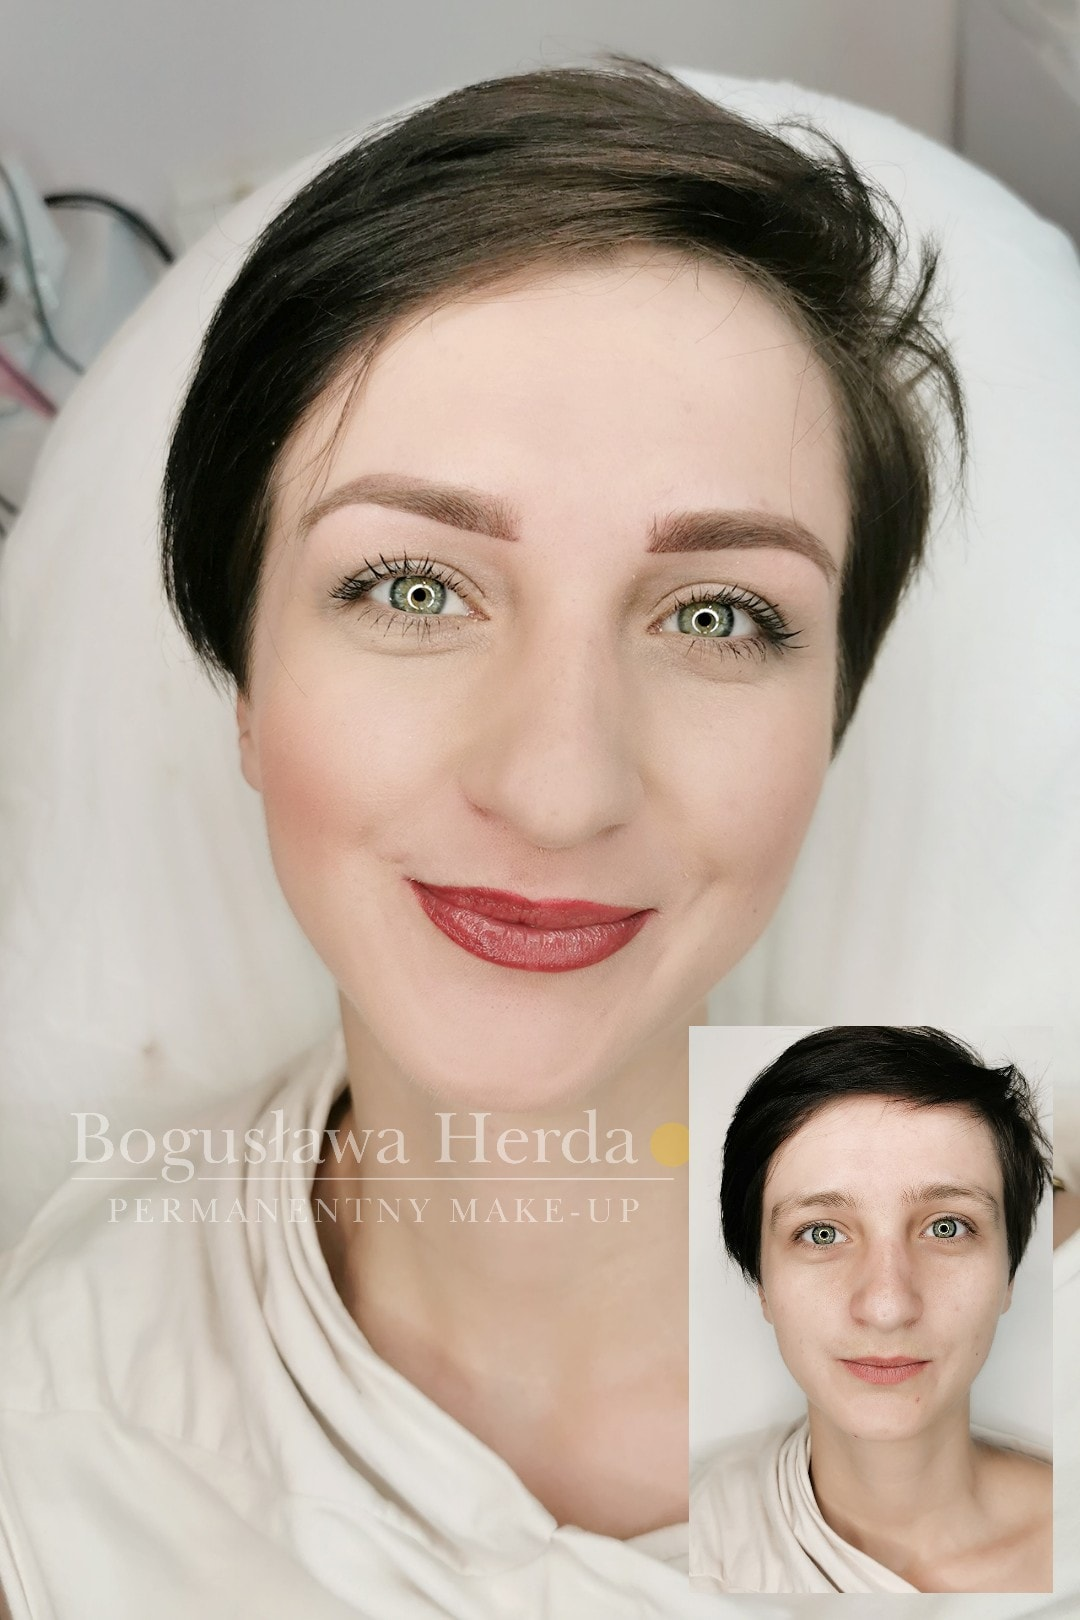 Bogusława Herda Permanentny Make-Up